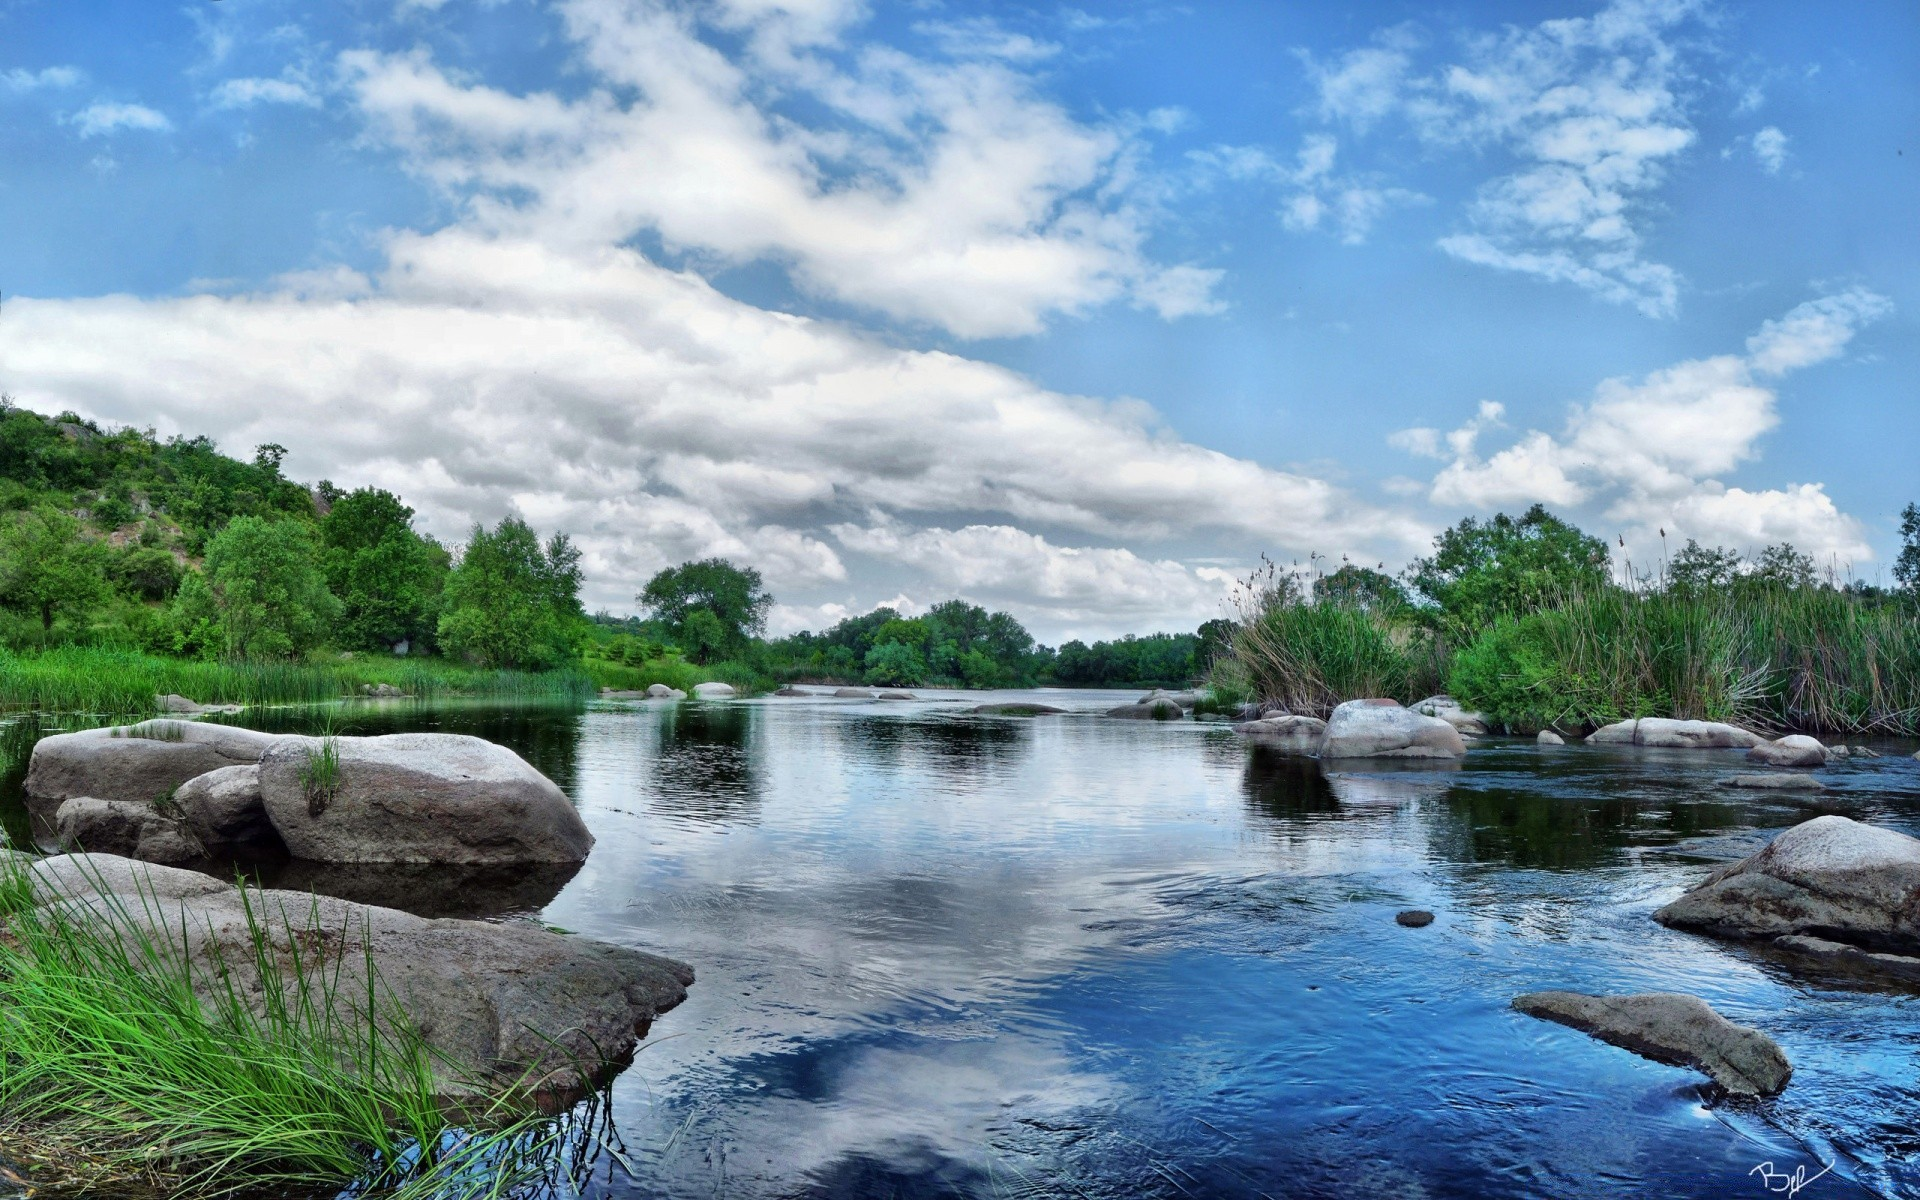 summer outdoors wallpaper. Rivers Ponds And Streams Water Nature Travel River Landscape Sky Tropical Summer Outdoors Rock Tree Stream Wallpaper